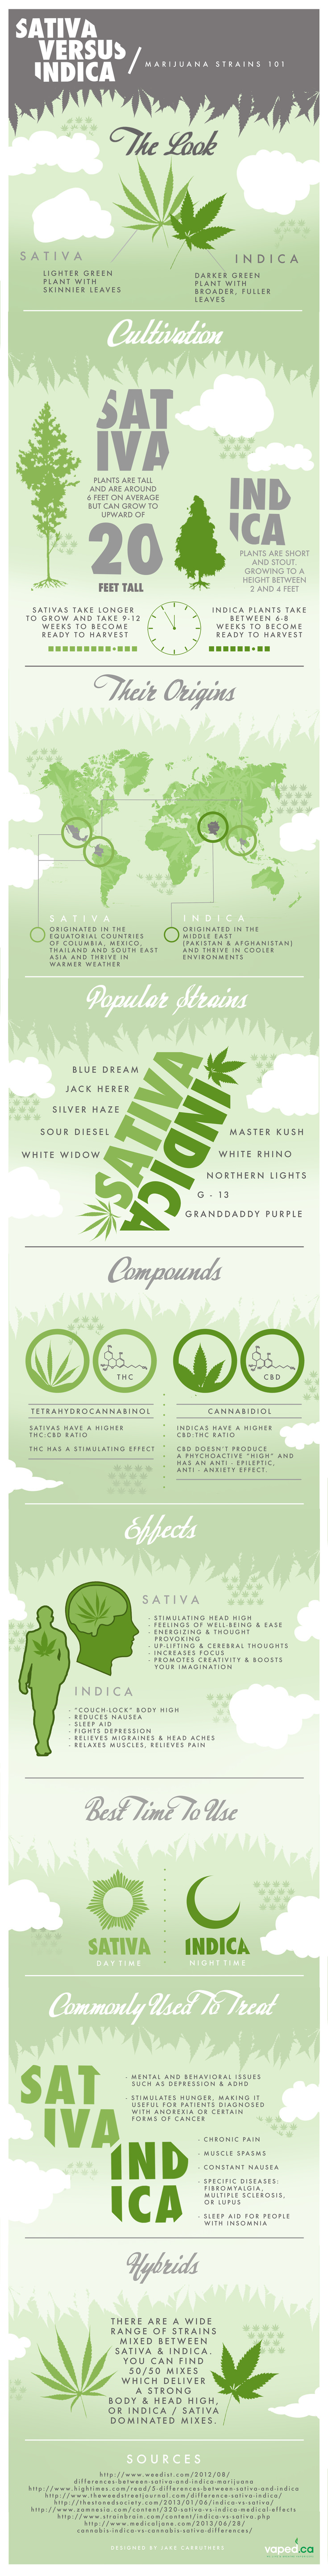 Sativa vs Indica: The Two Major Strains of Cannabis